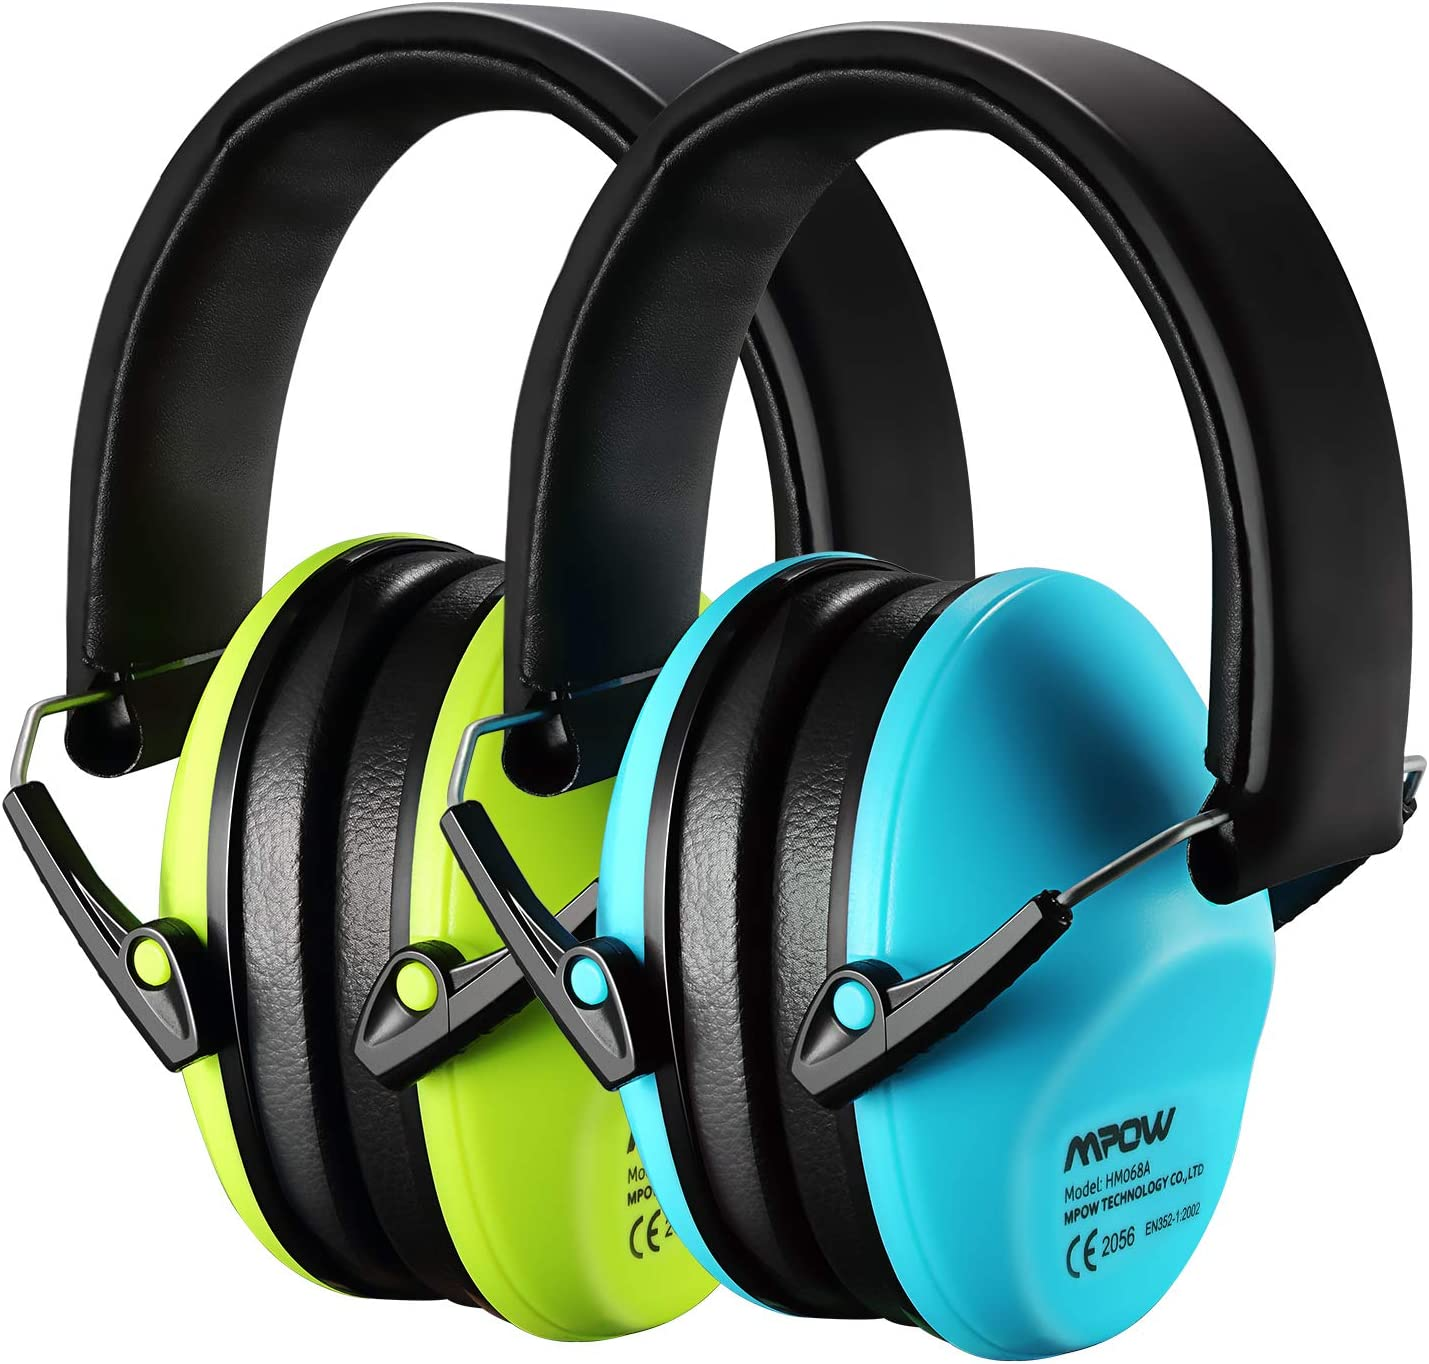 2Pack Mpow Kids Ear Hearing Protection NRR 25dB Noise Reduction For Child Travel